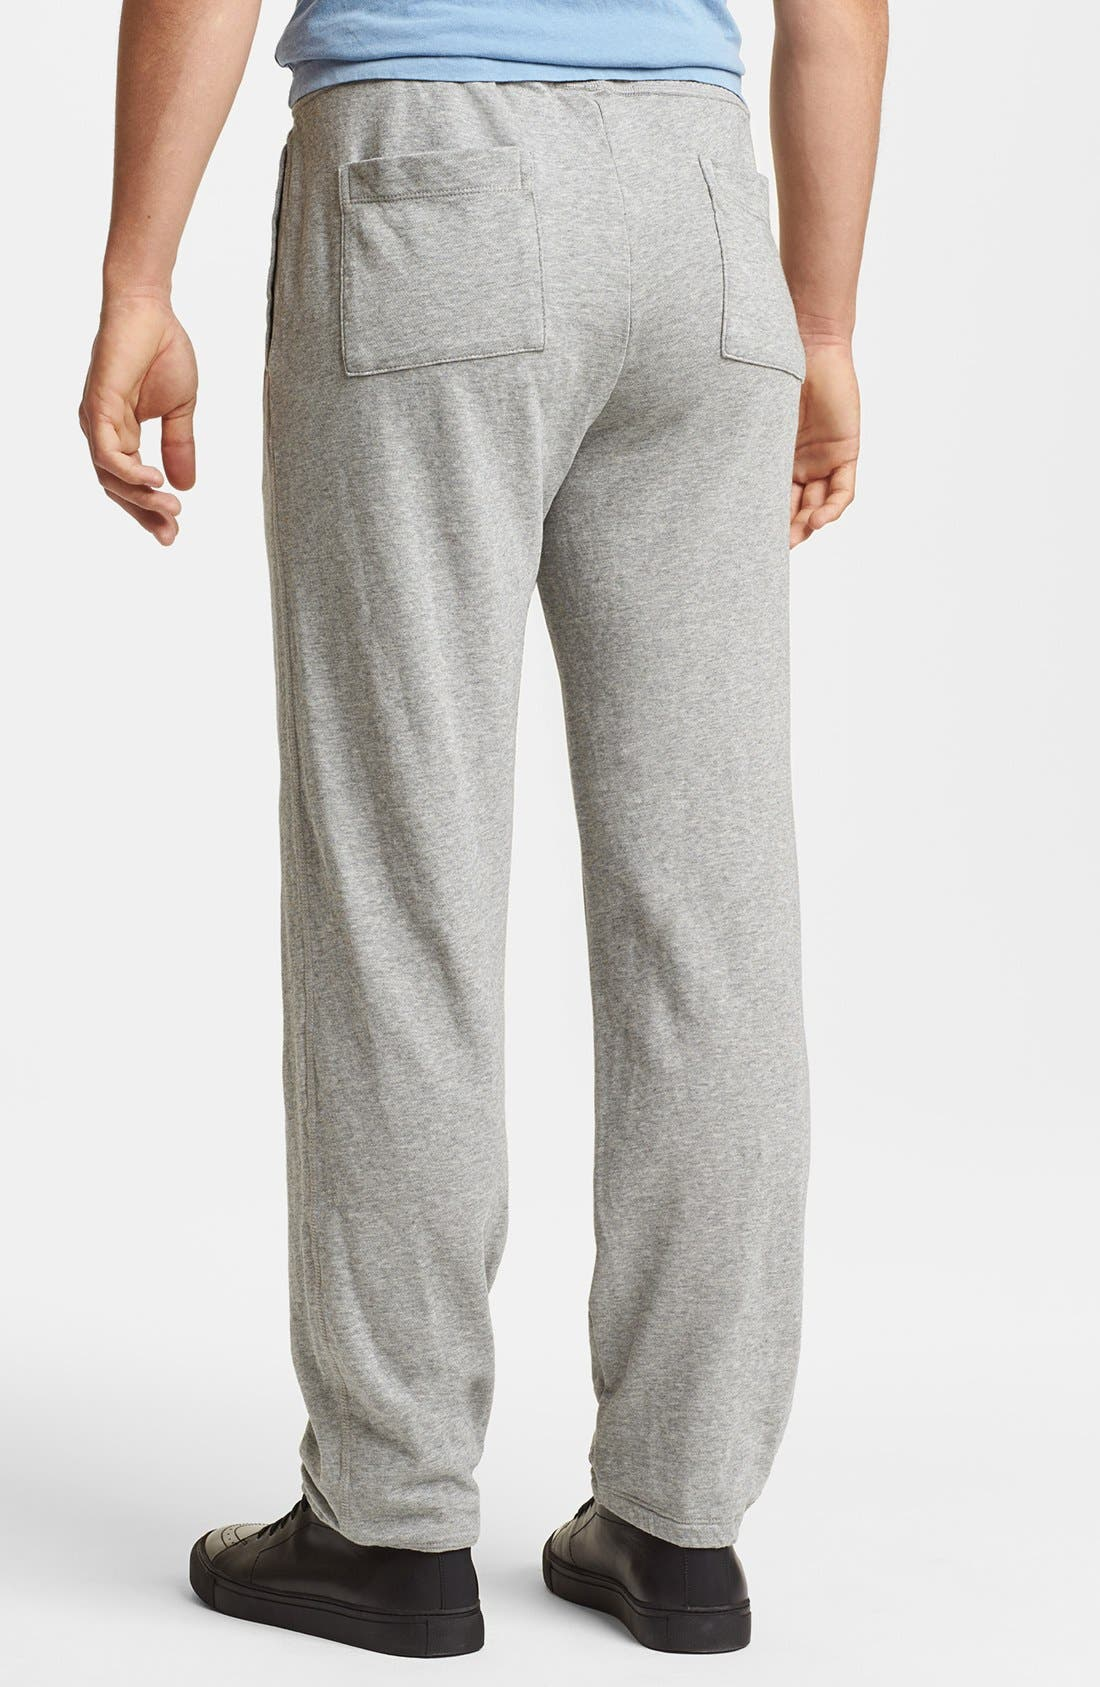 Classic Sweatpants,                             Alternate thumbnail 2, color,                             Heather Grey